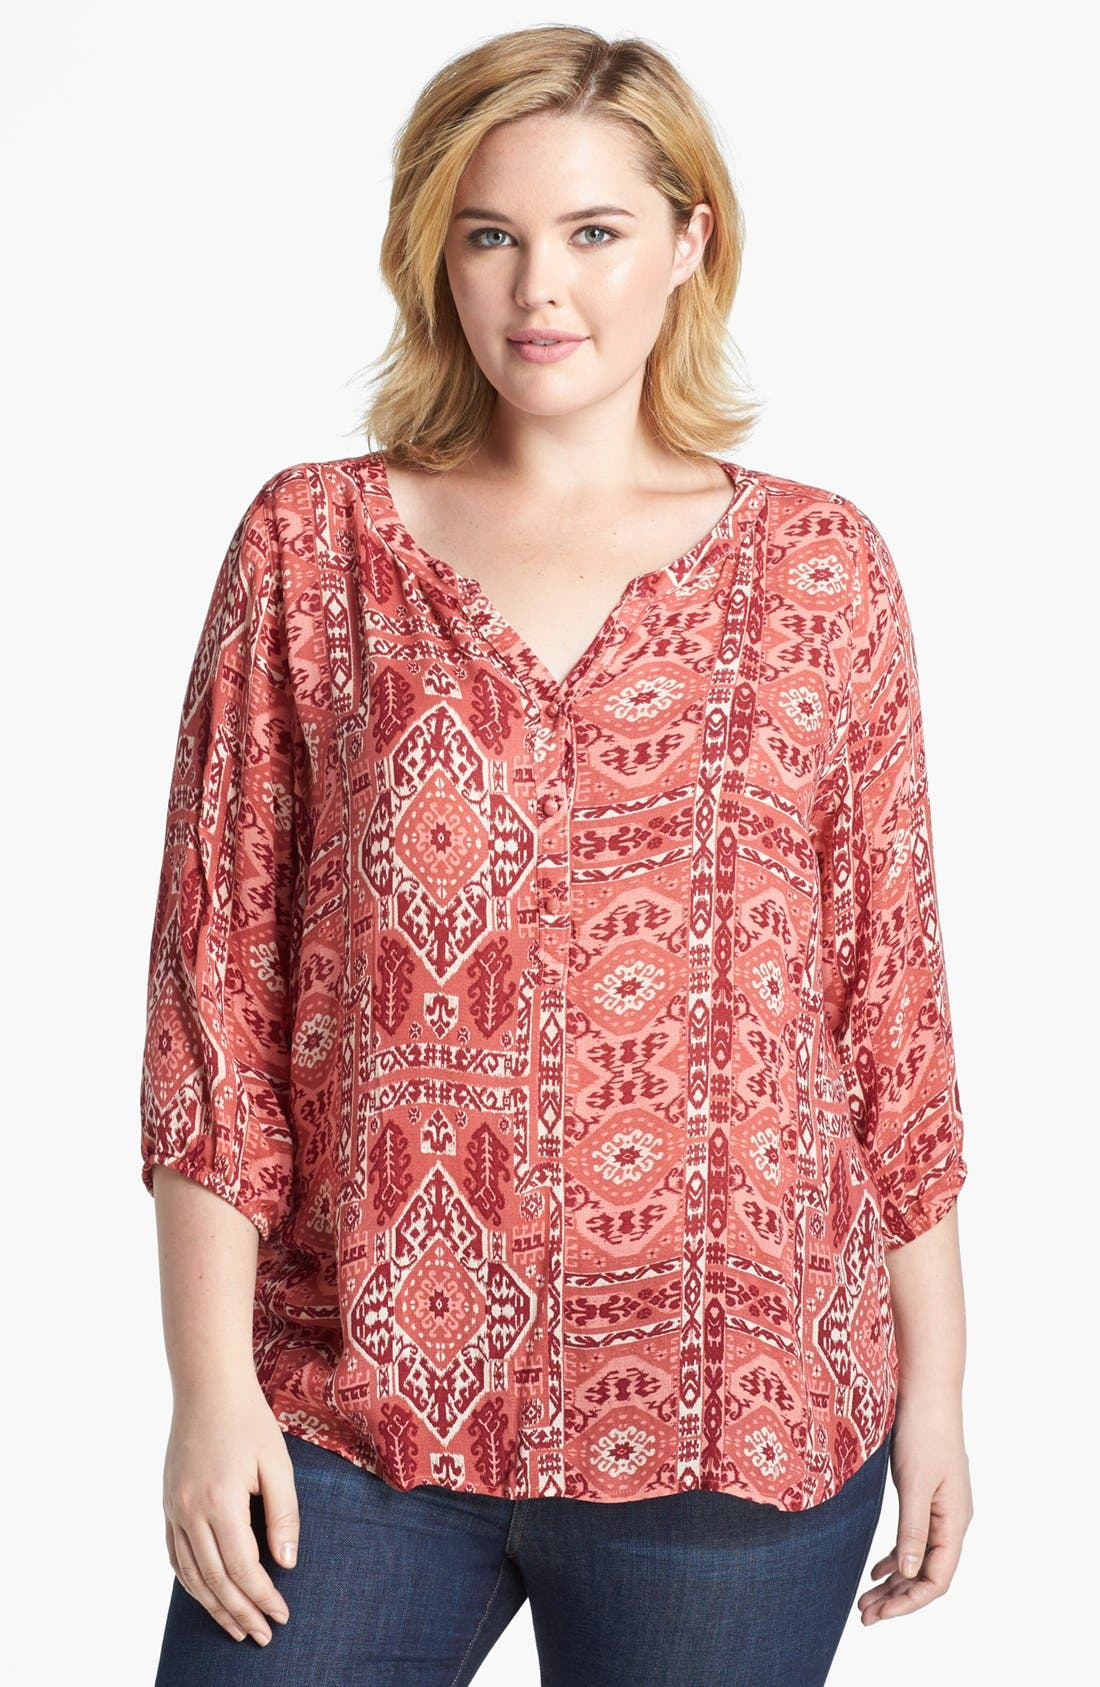 Alternate Image 1 Selected - Lucky Brand 'Ikat Canyon' Top (Plus Size)